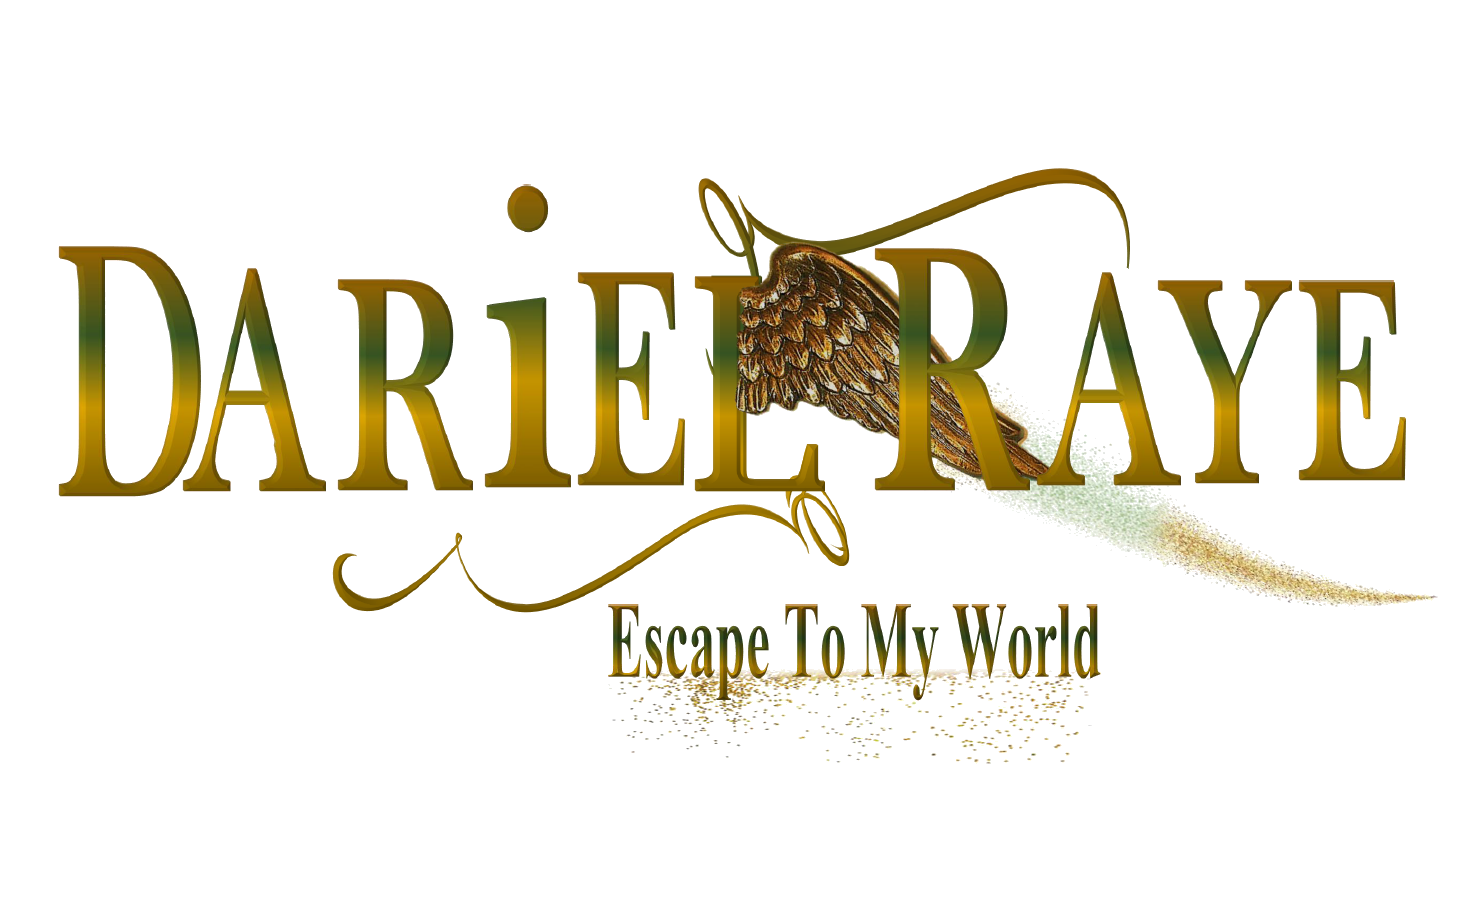 Dariel Raye on Amazon